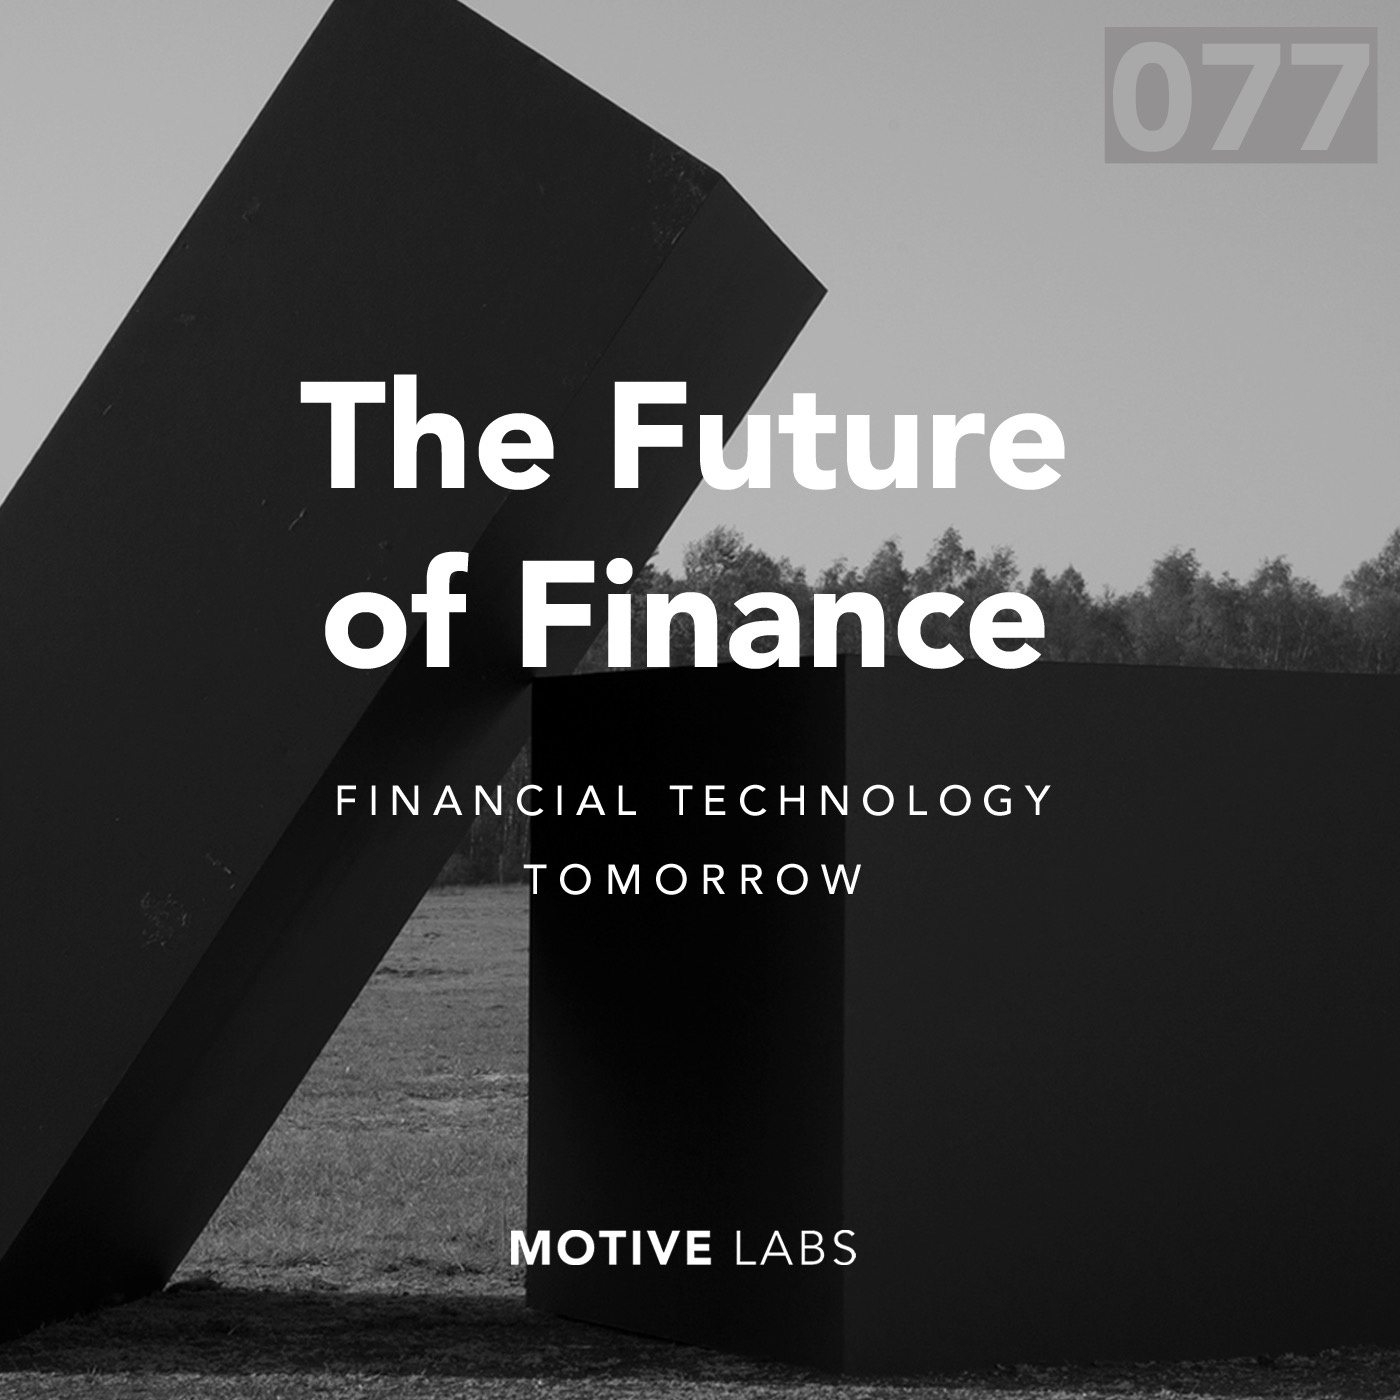 077 - Duncan Sandys, preparing the payment industry for the future